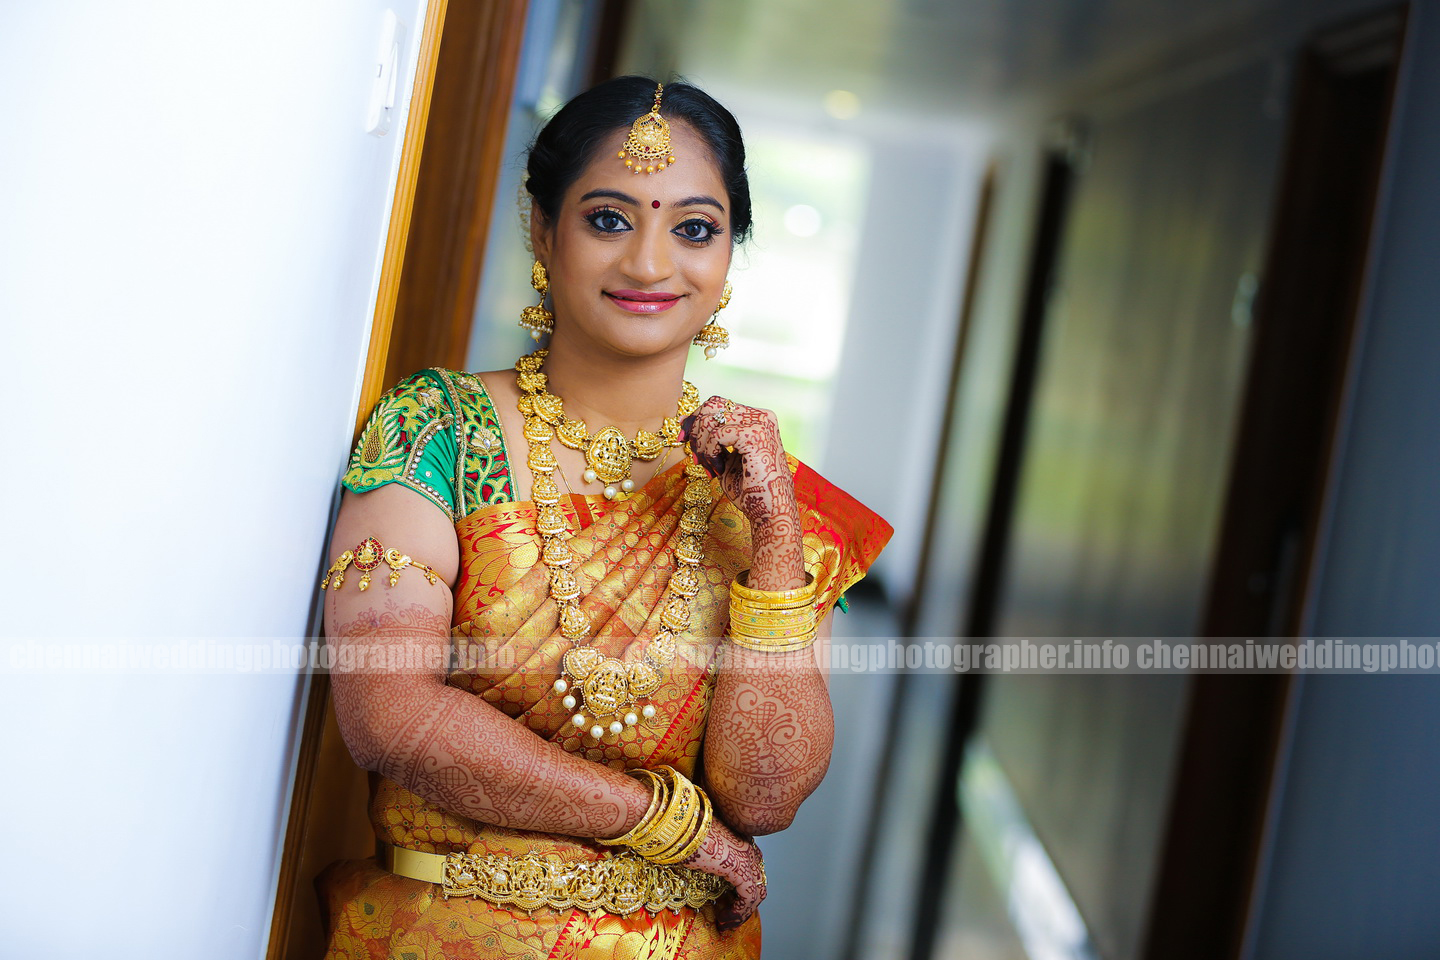 candid weddingphotographer in chenna